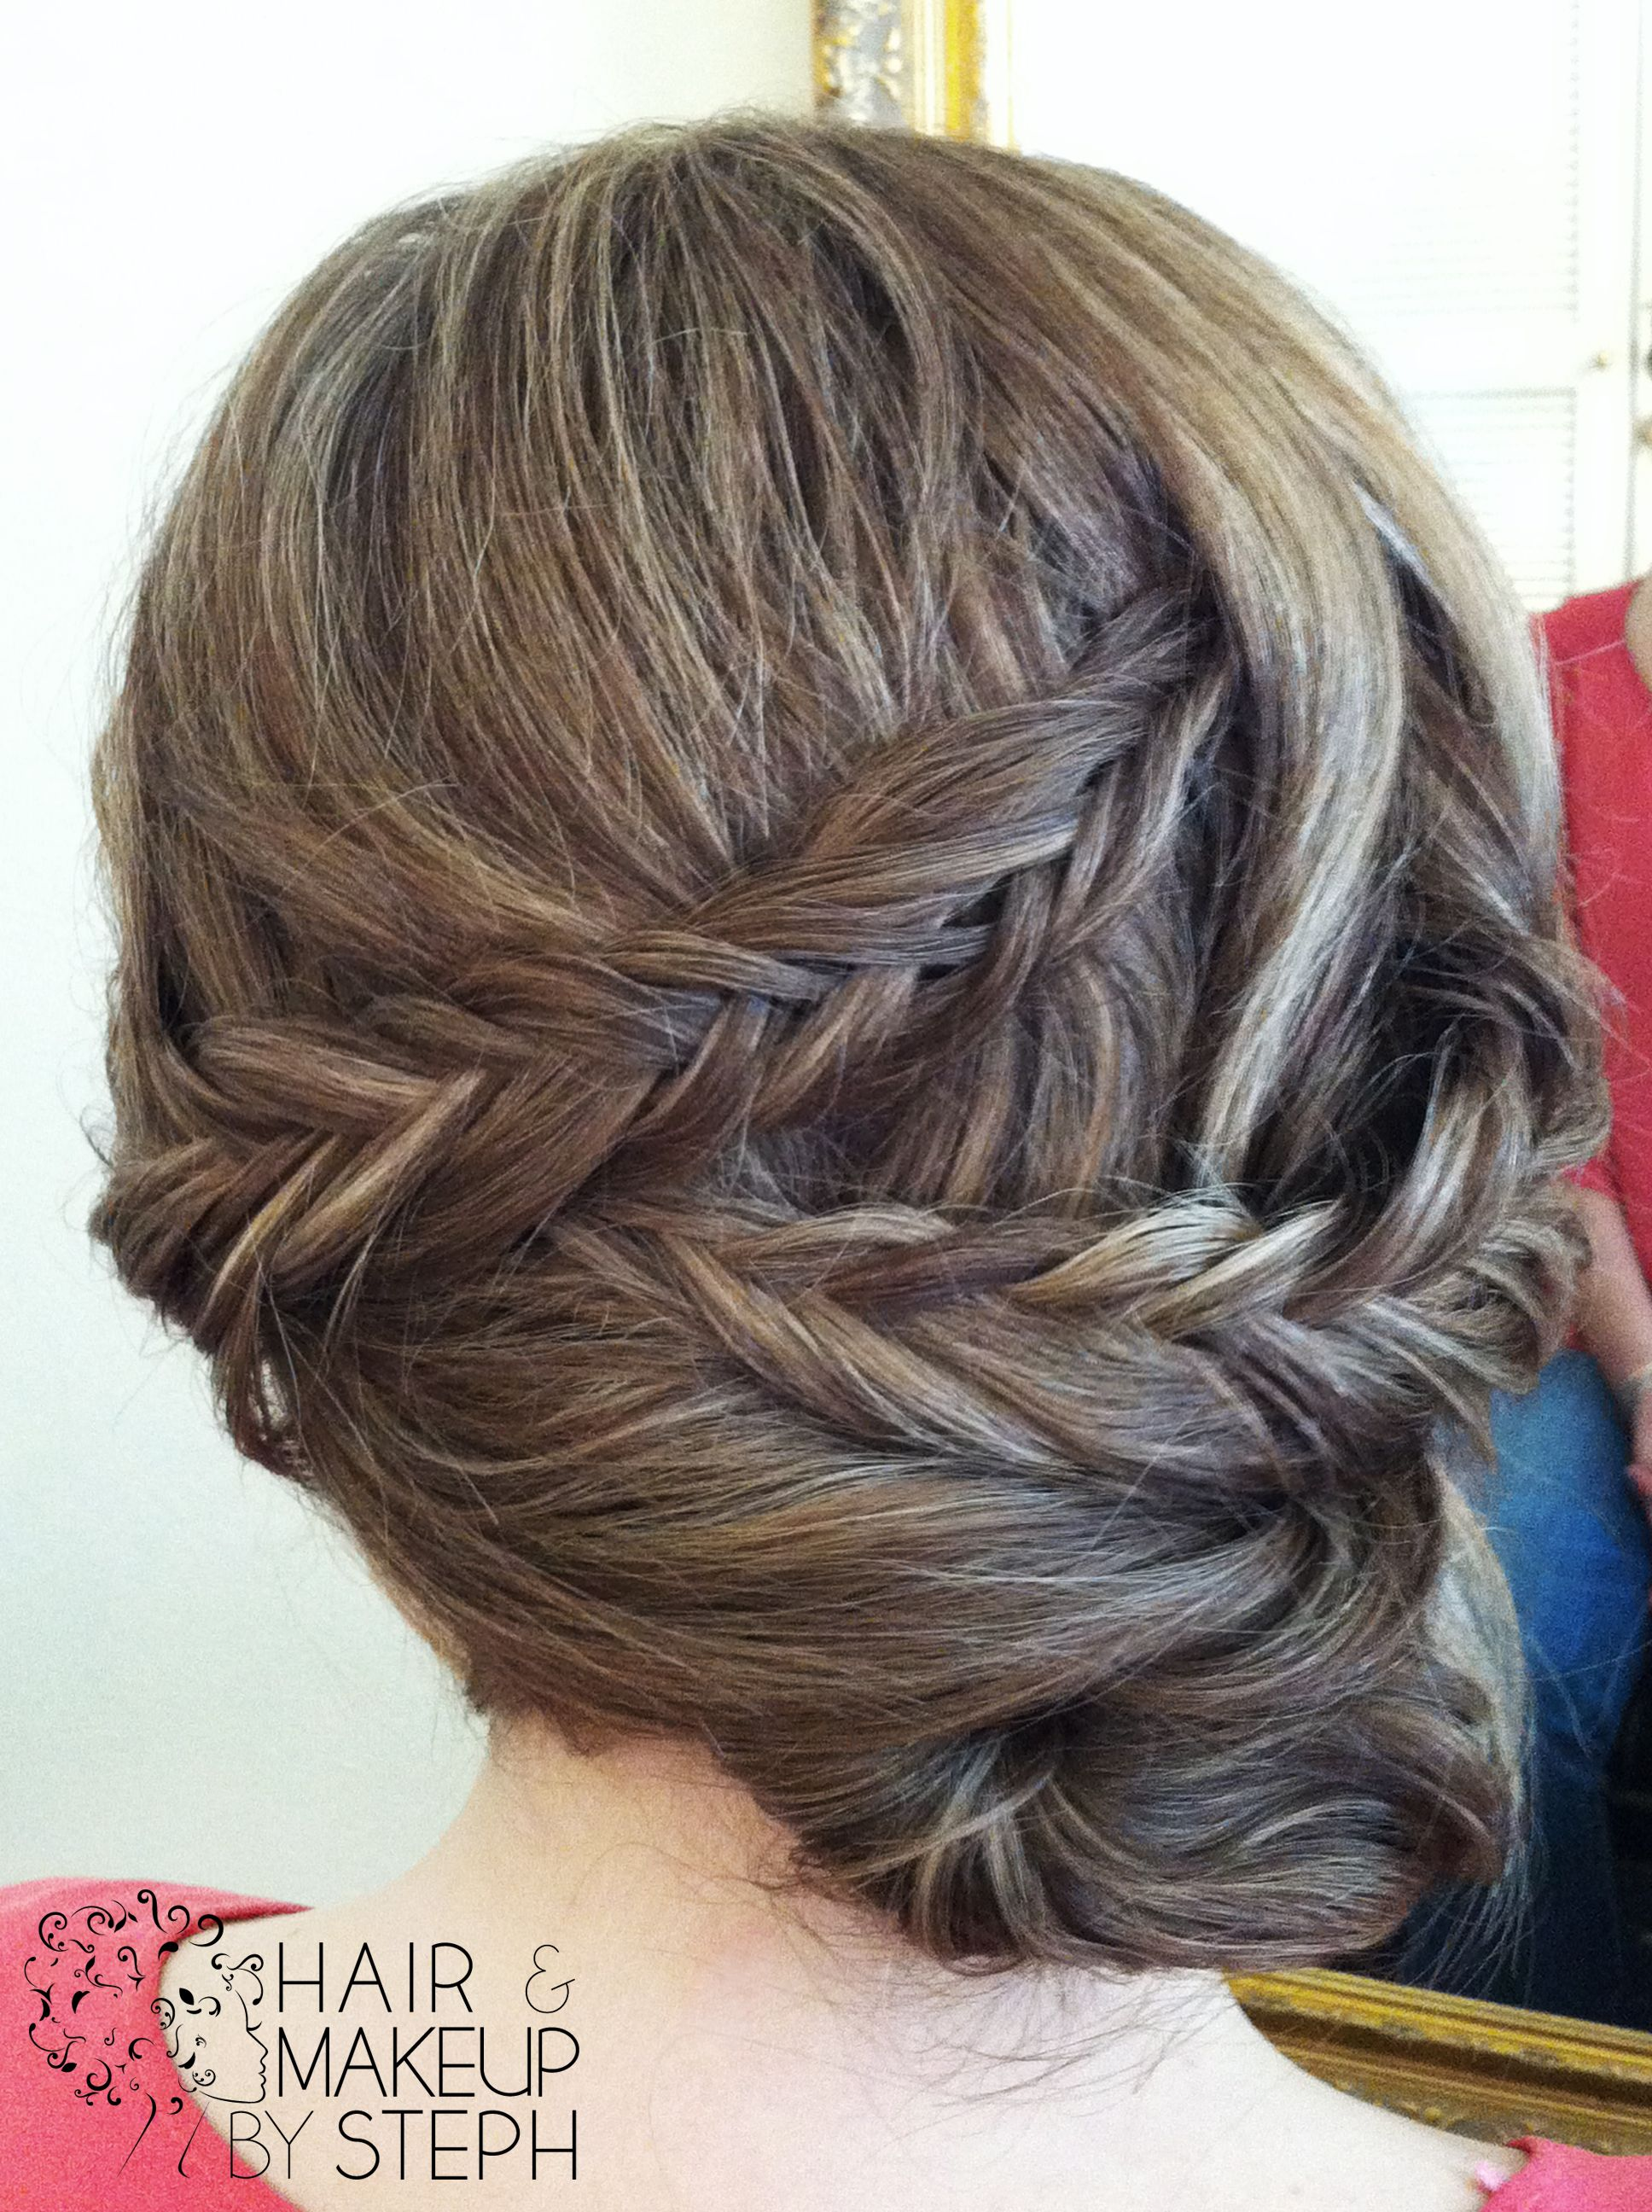 Hair and makeup by steph fishtail braids fishtail and hair style